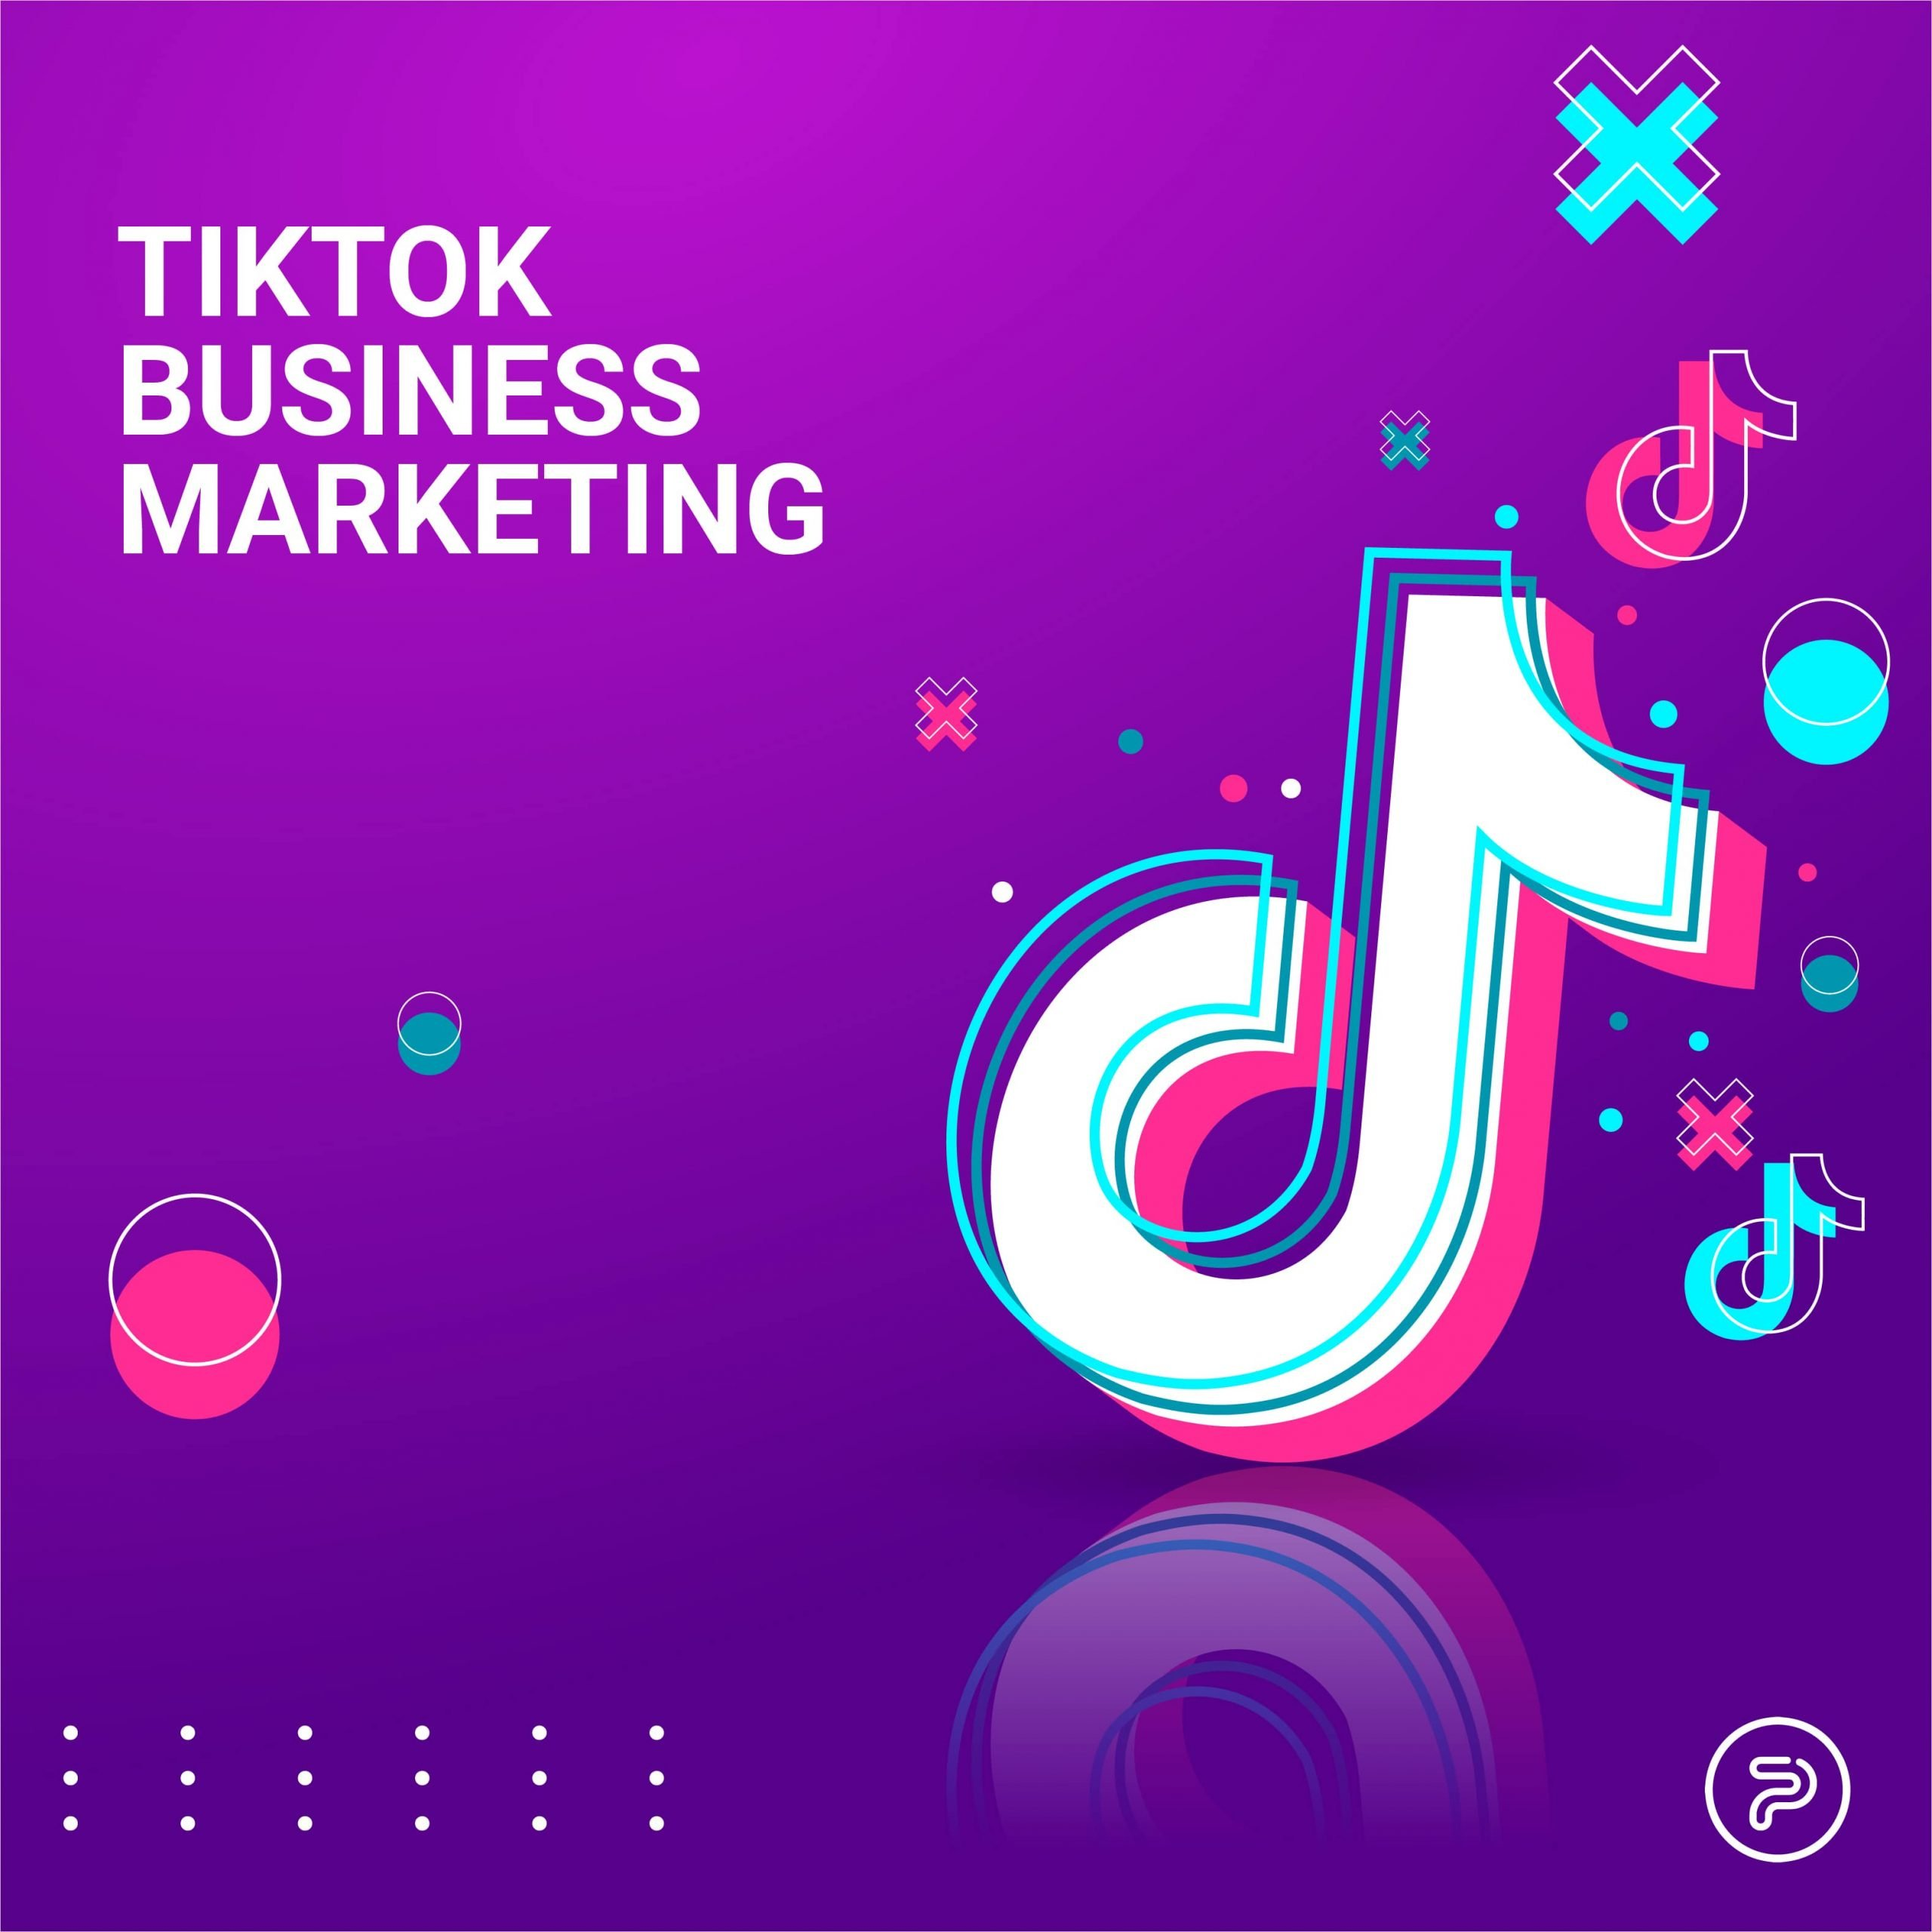 Best Tips And Strategies For TikTok Marketing For Business